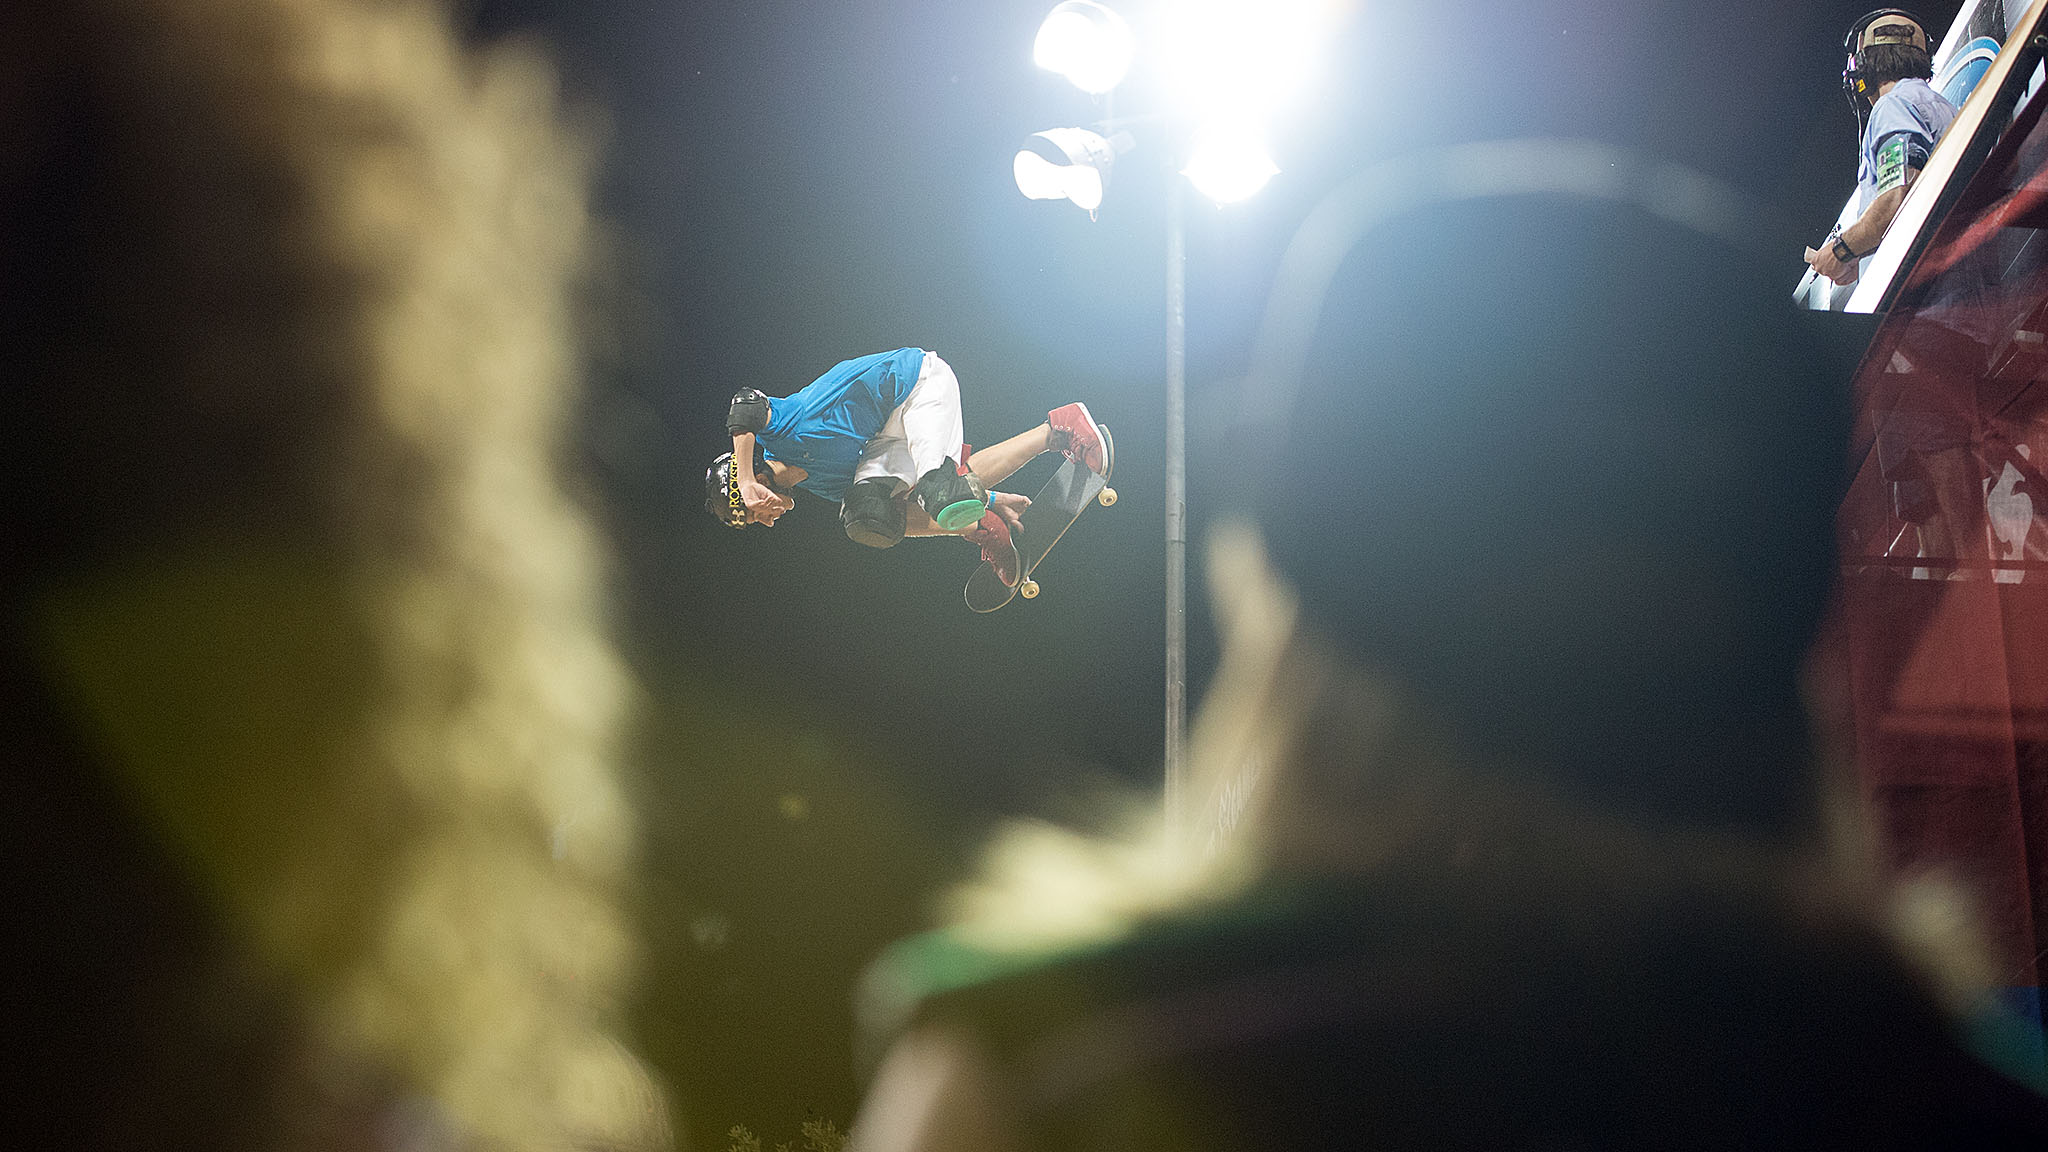 Mitchie Brusco, 17, took bronze in Skateboard Vert.